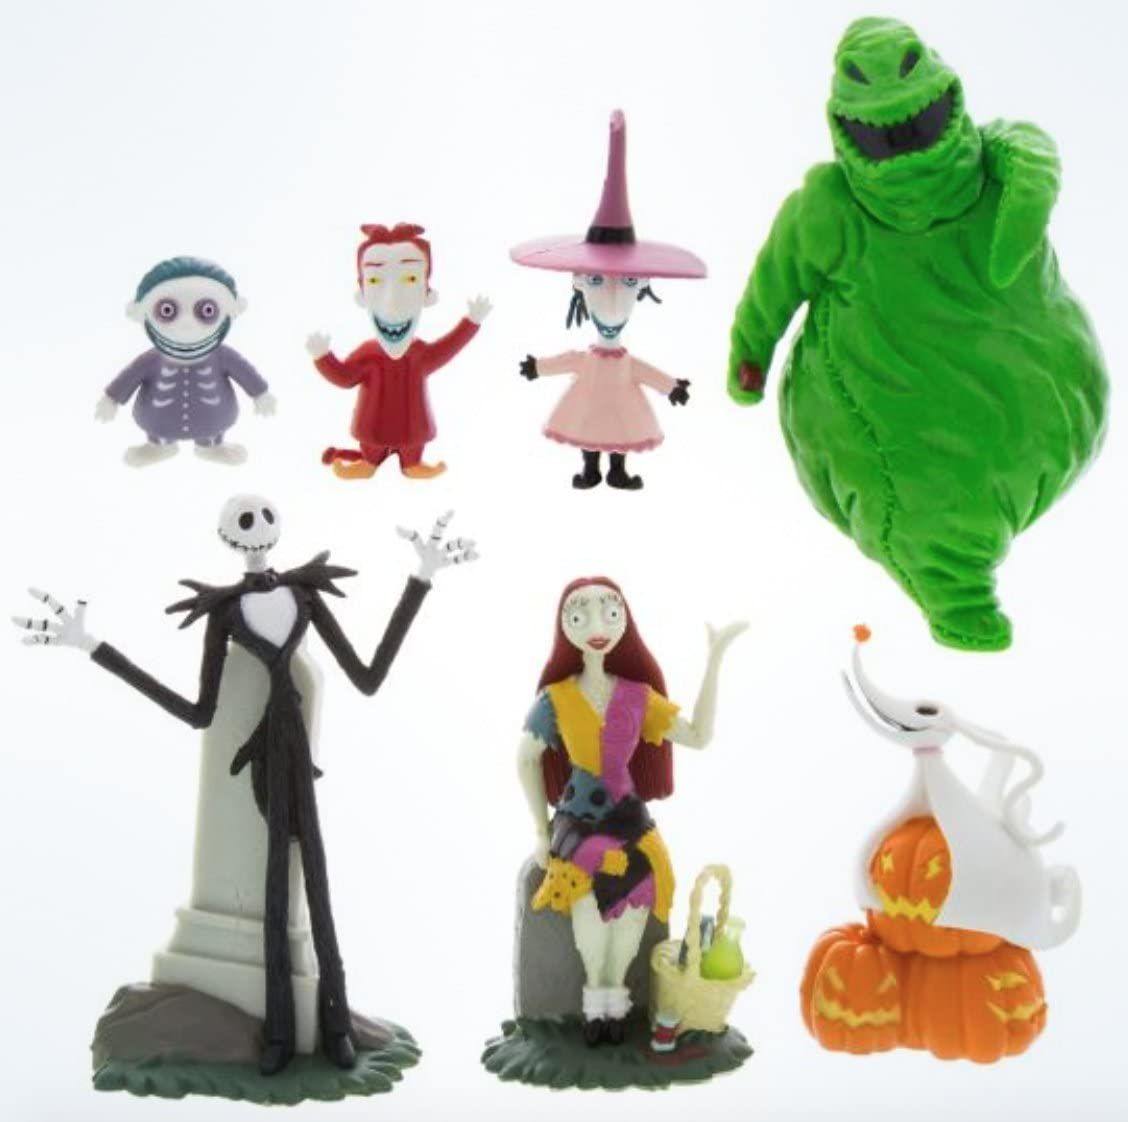 Happy Meal Toys Schedule October 2020 Nightmare Before Christmas Amazon.com: Nightmare Before Christmas Disney Parks Exclusive Jack